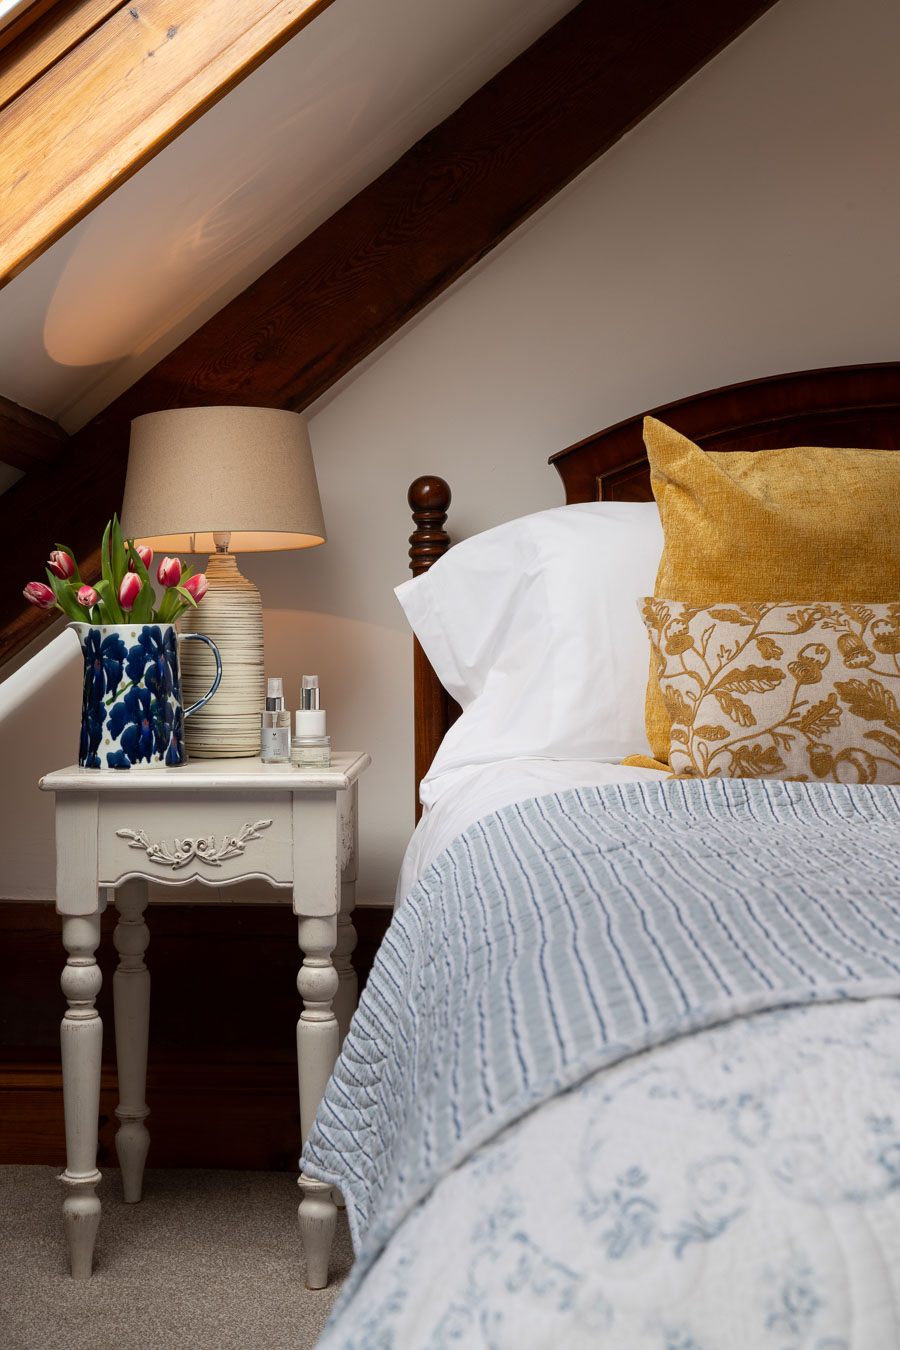 Blue bedspread and yellow cushions on the Master bed in Mangers cottage Flear Farm.